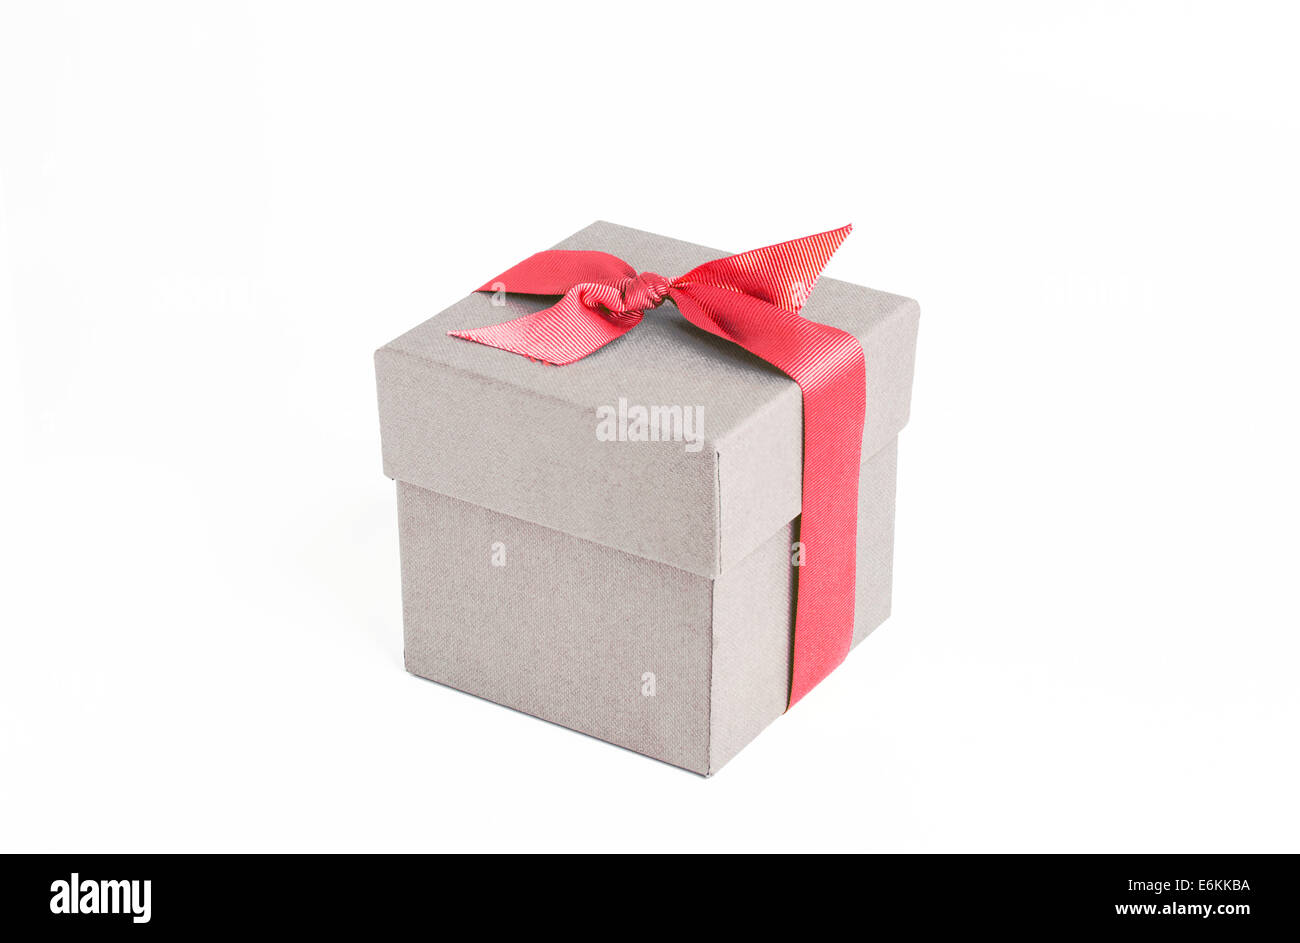 Gift box with red ribbon - Stock Image